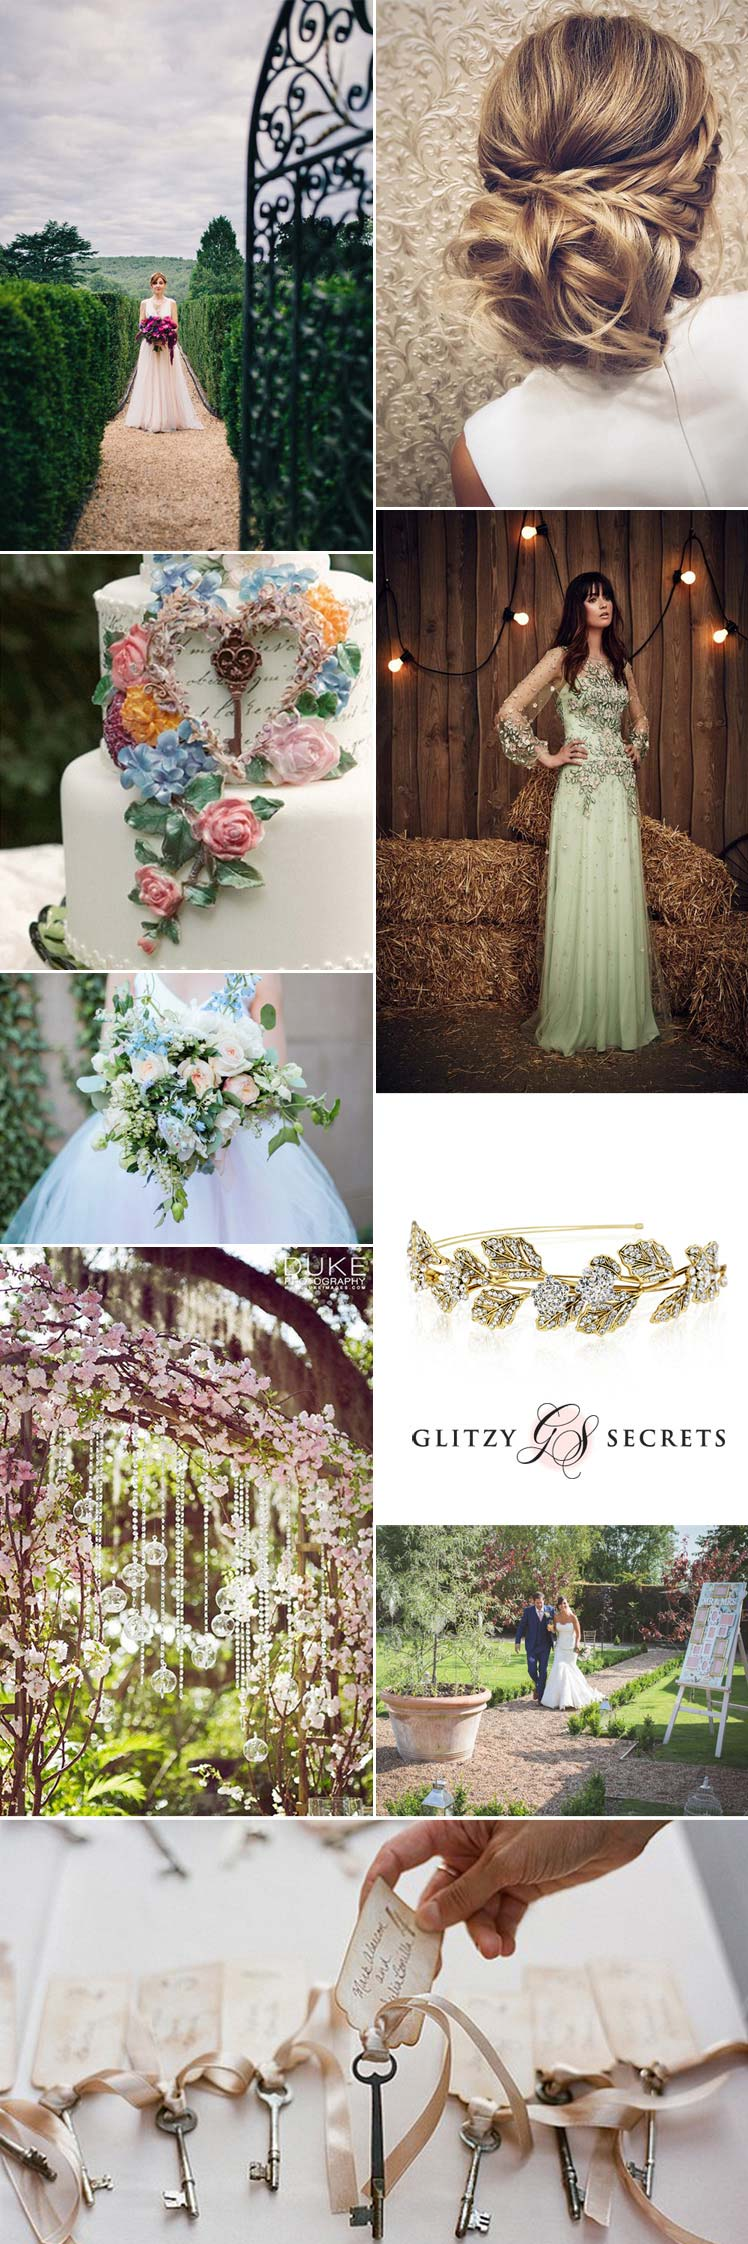 beautiful ideas for a secret garden wedding